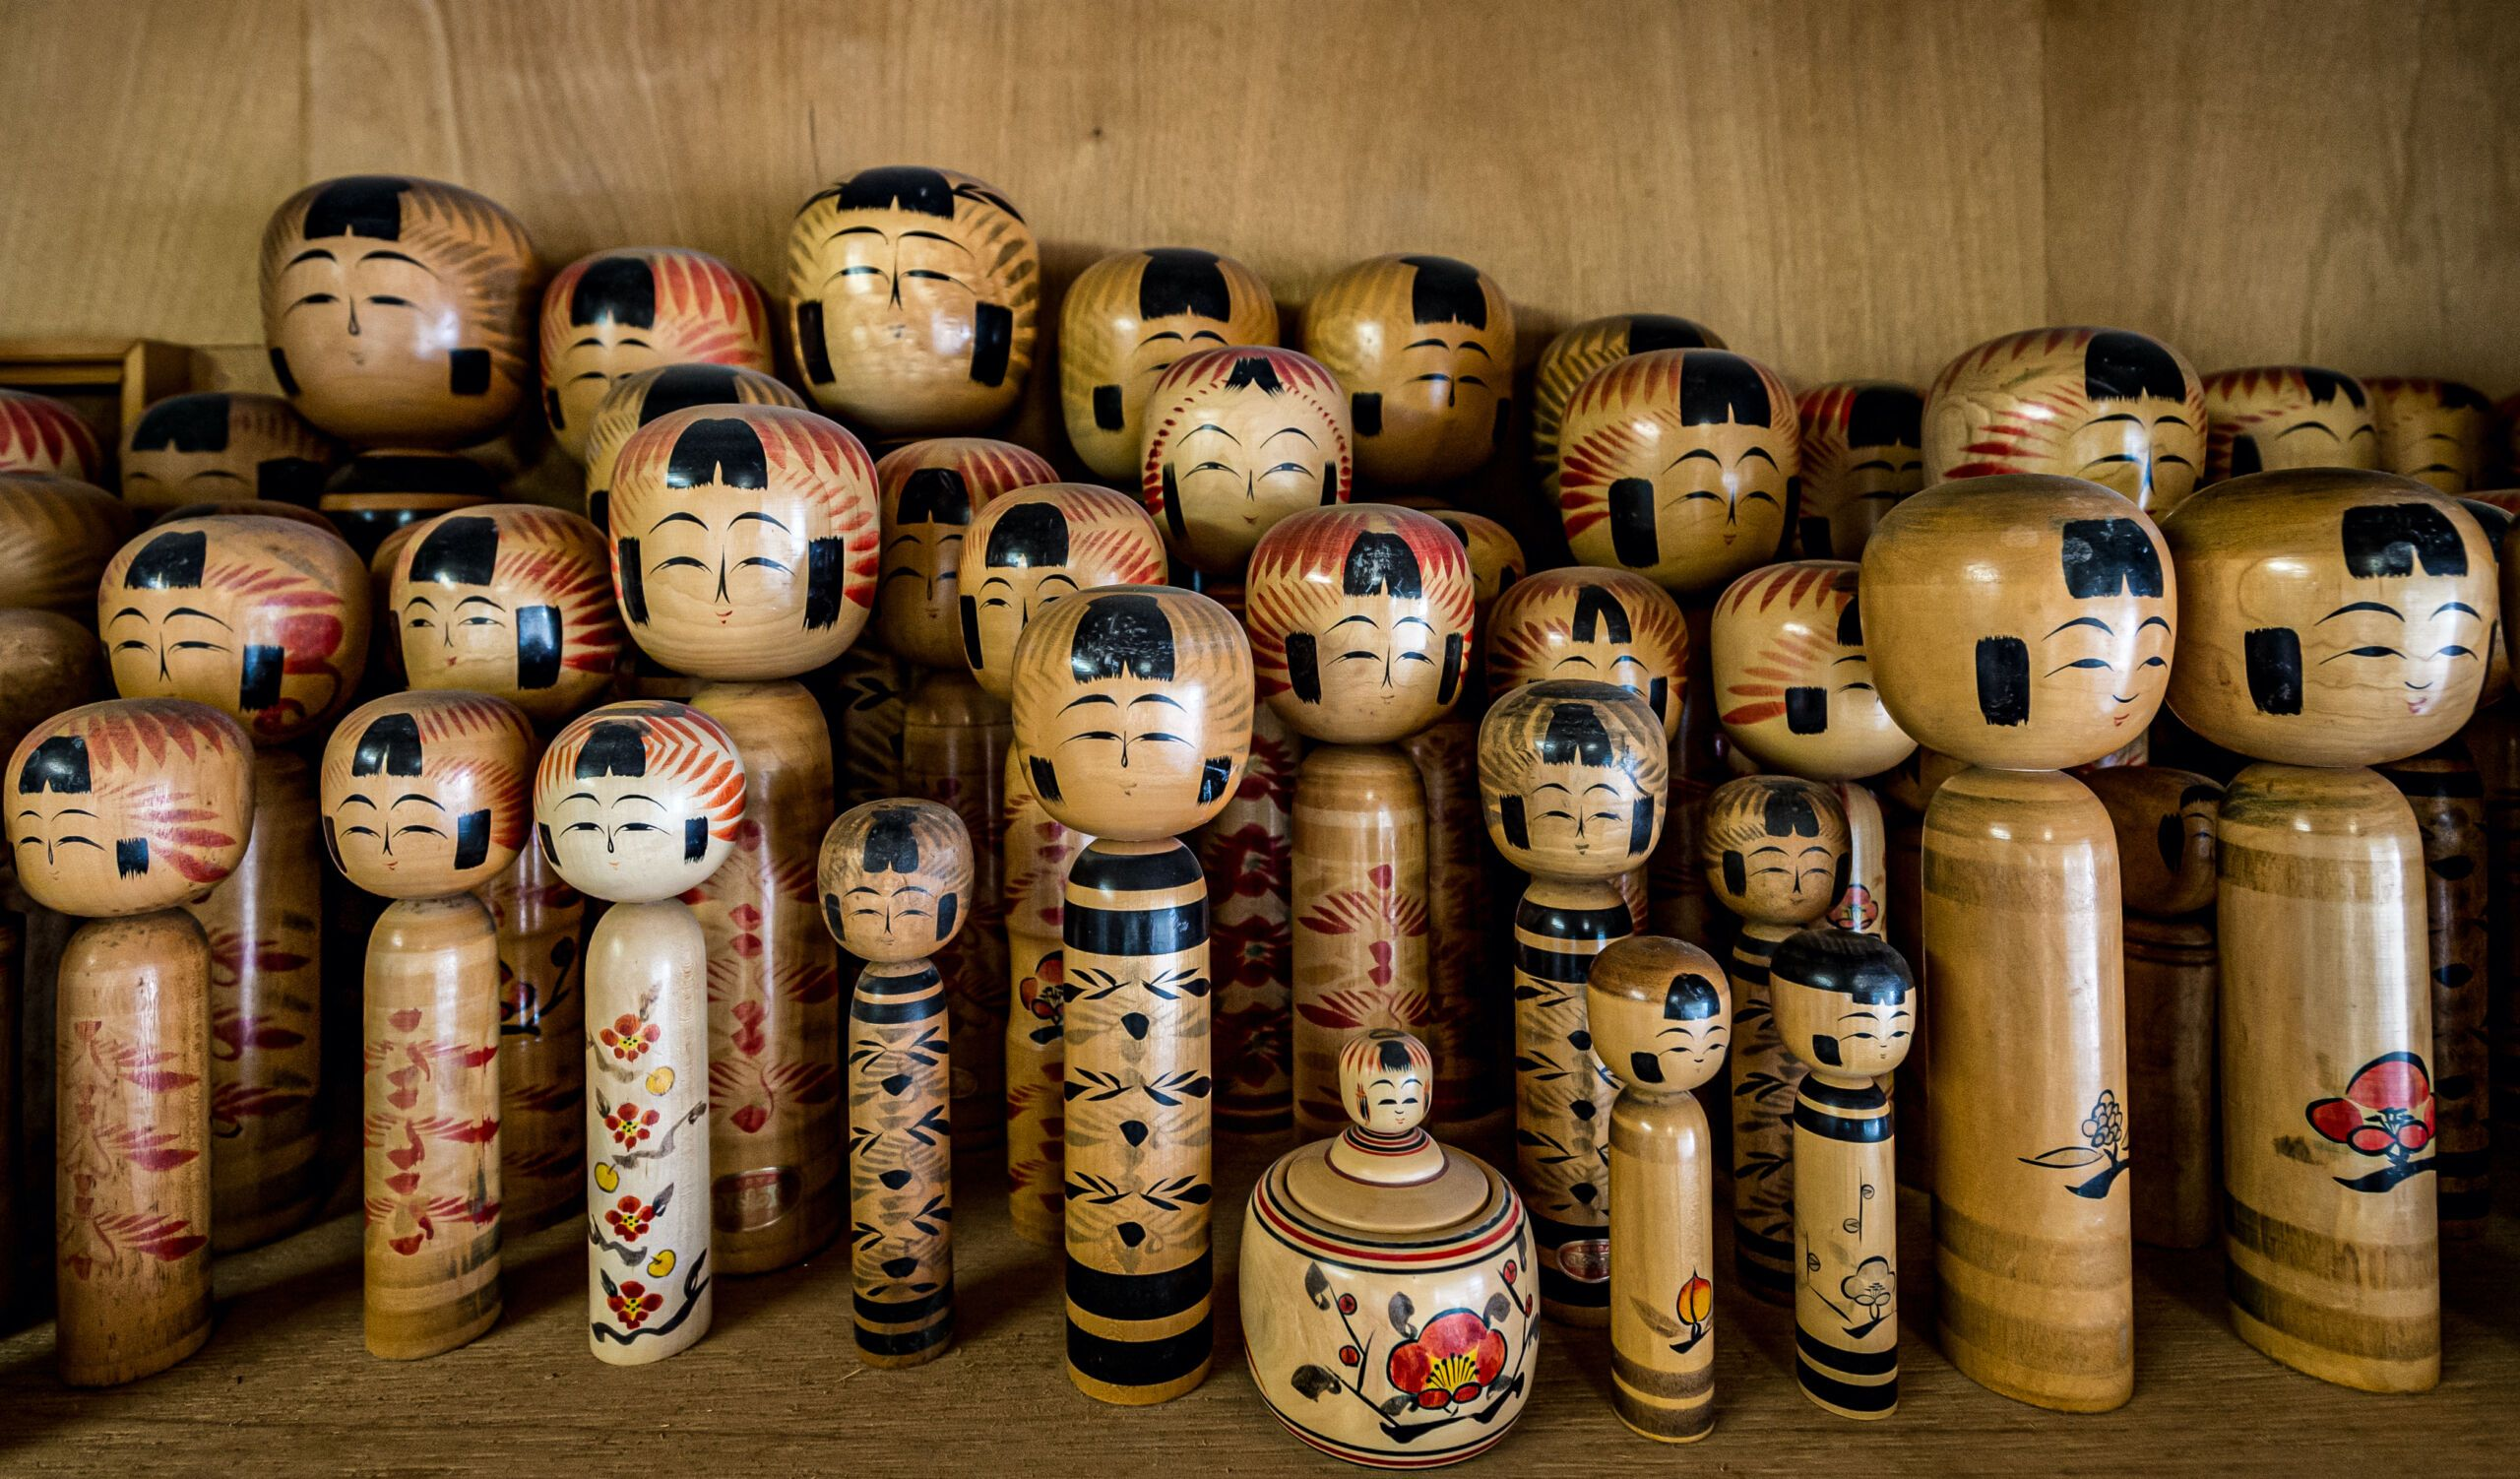 Japanese traditional folk art kokeshi dolls with various expressions, museums in japan